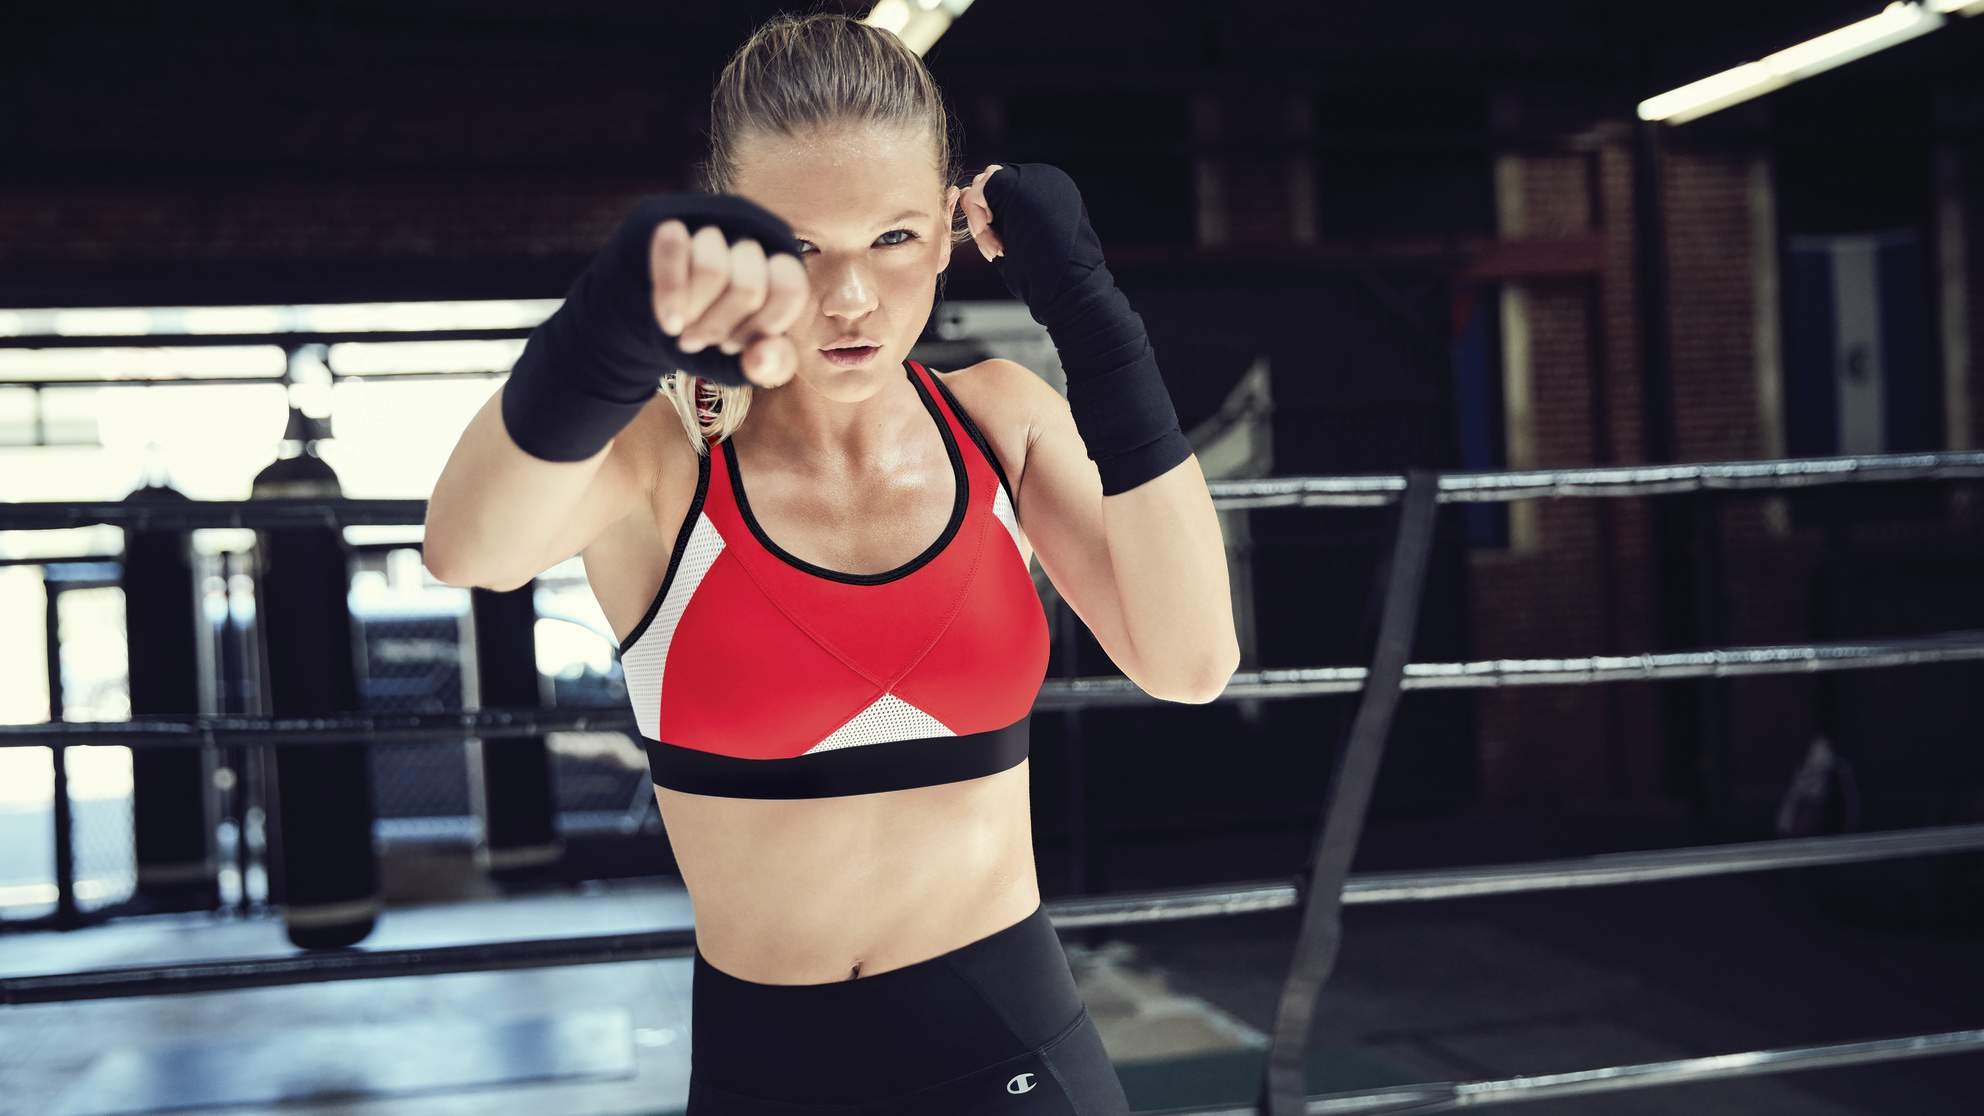 The Sports Bra Turns 40! An Interview with the Woman Responsible for Designing It